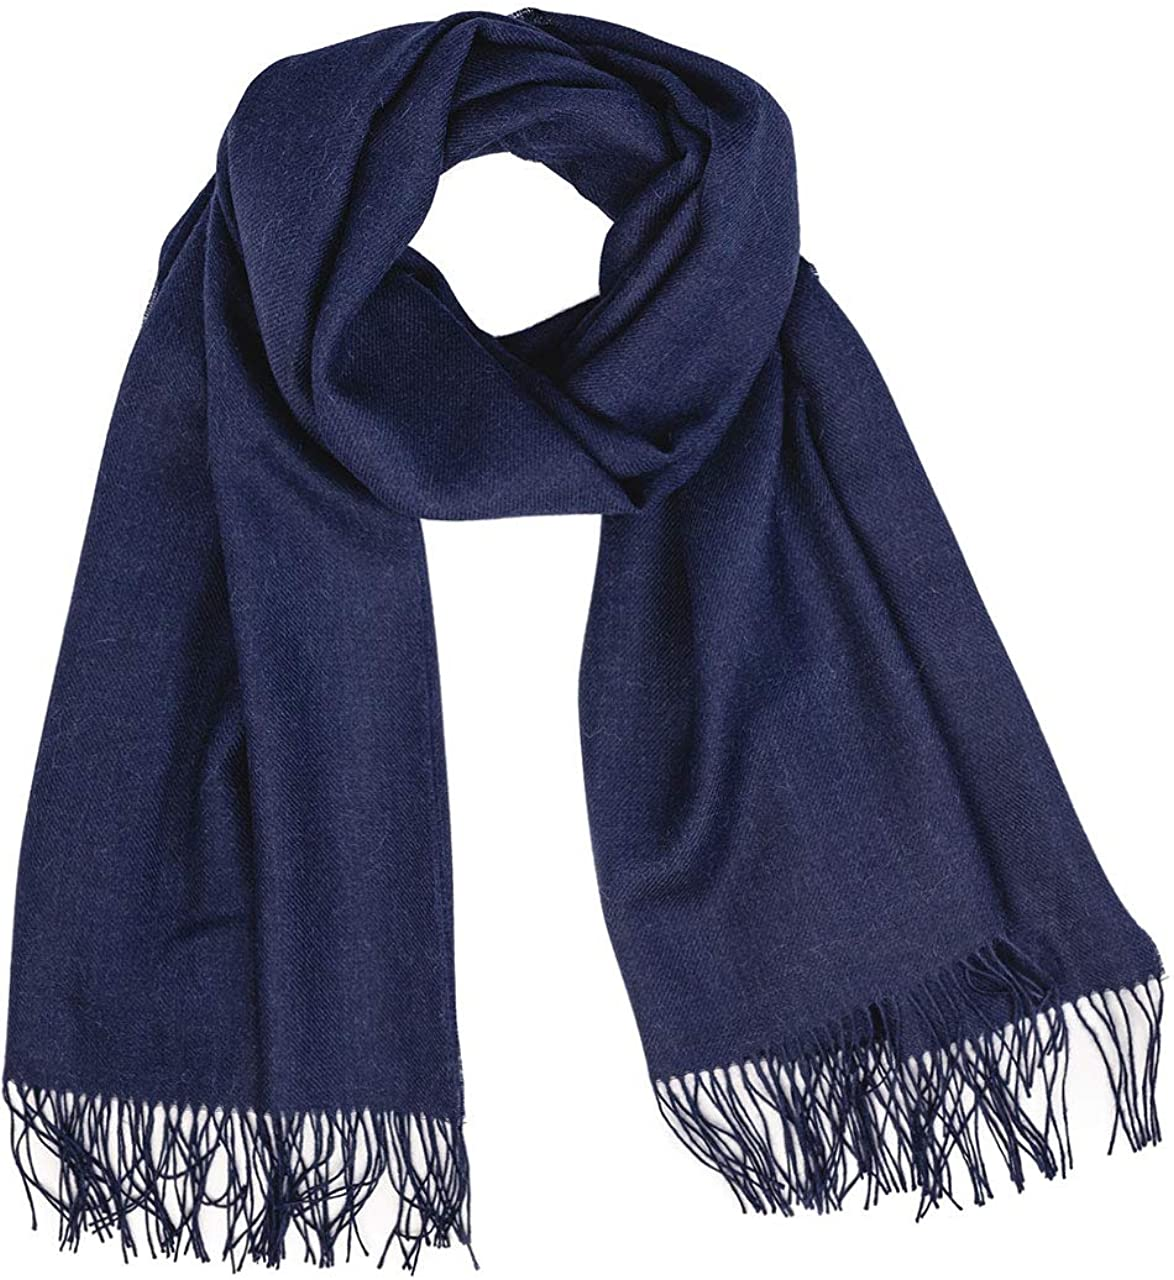 100% Baby Alpaca Wool Oversized Scarf & Shawl, Ethically Sourced, Hypoallergenic - Unisex | 27.5 x 78.5 inches